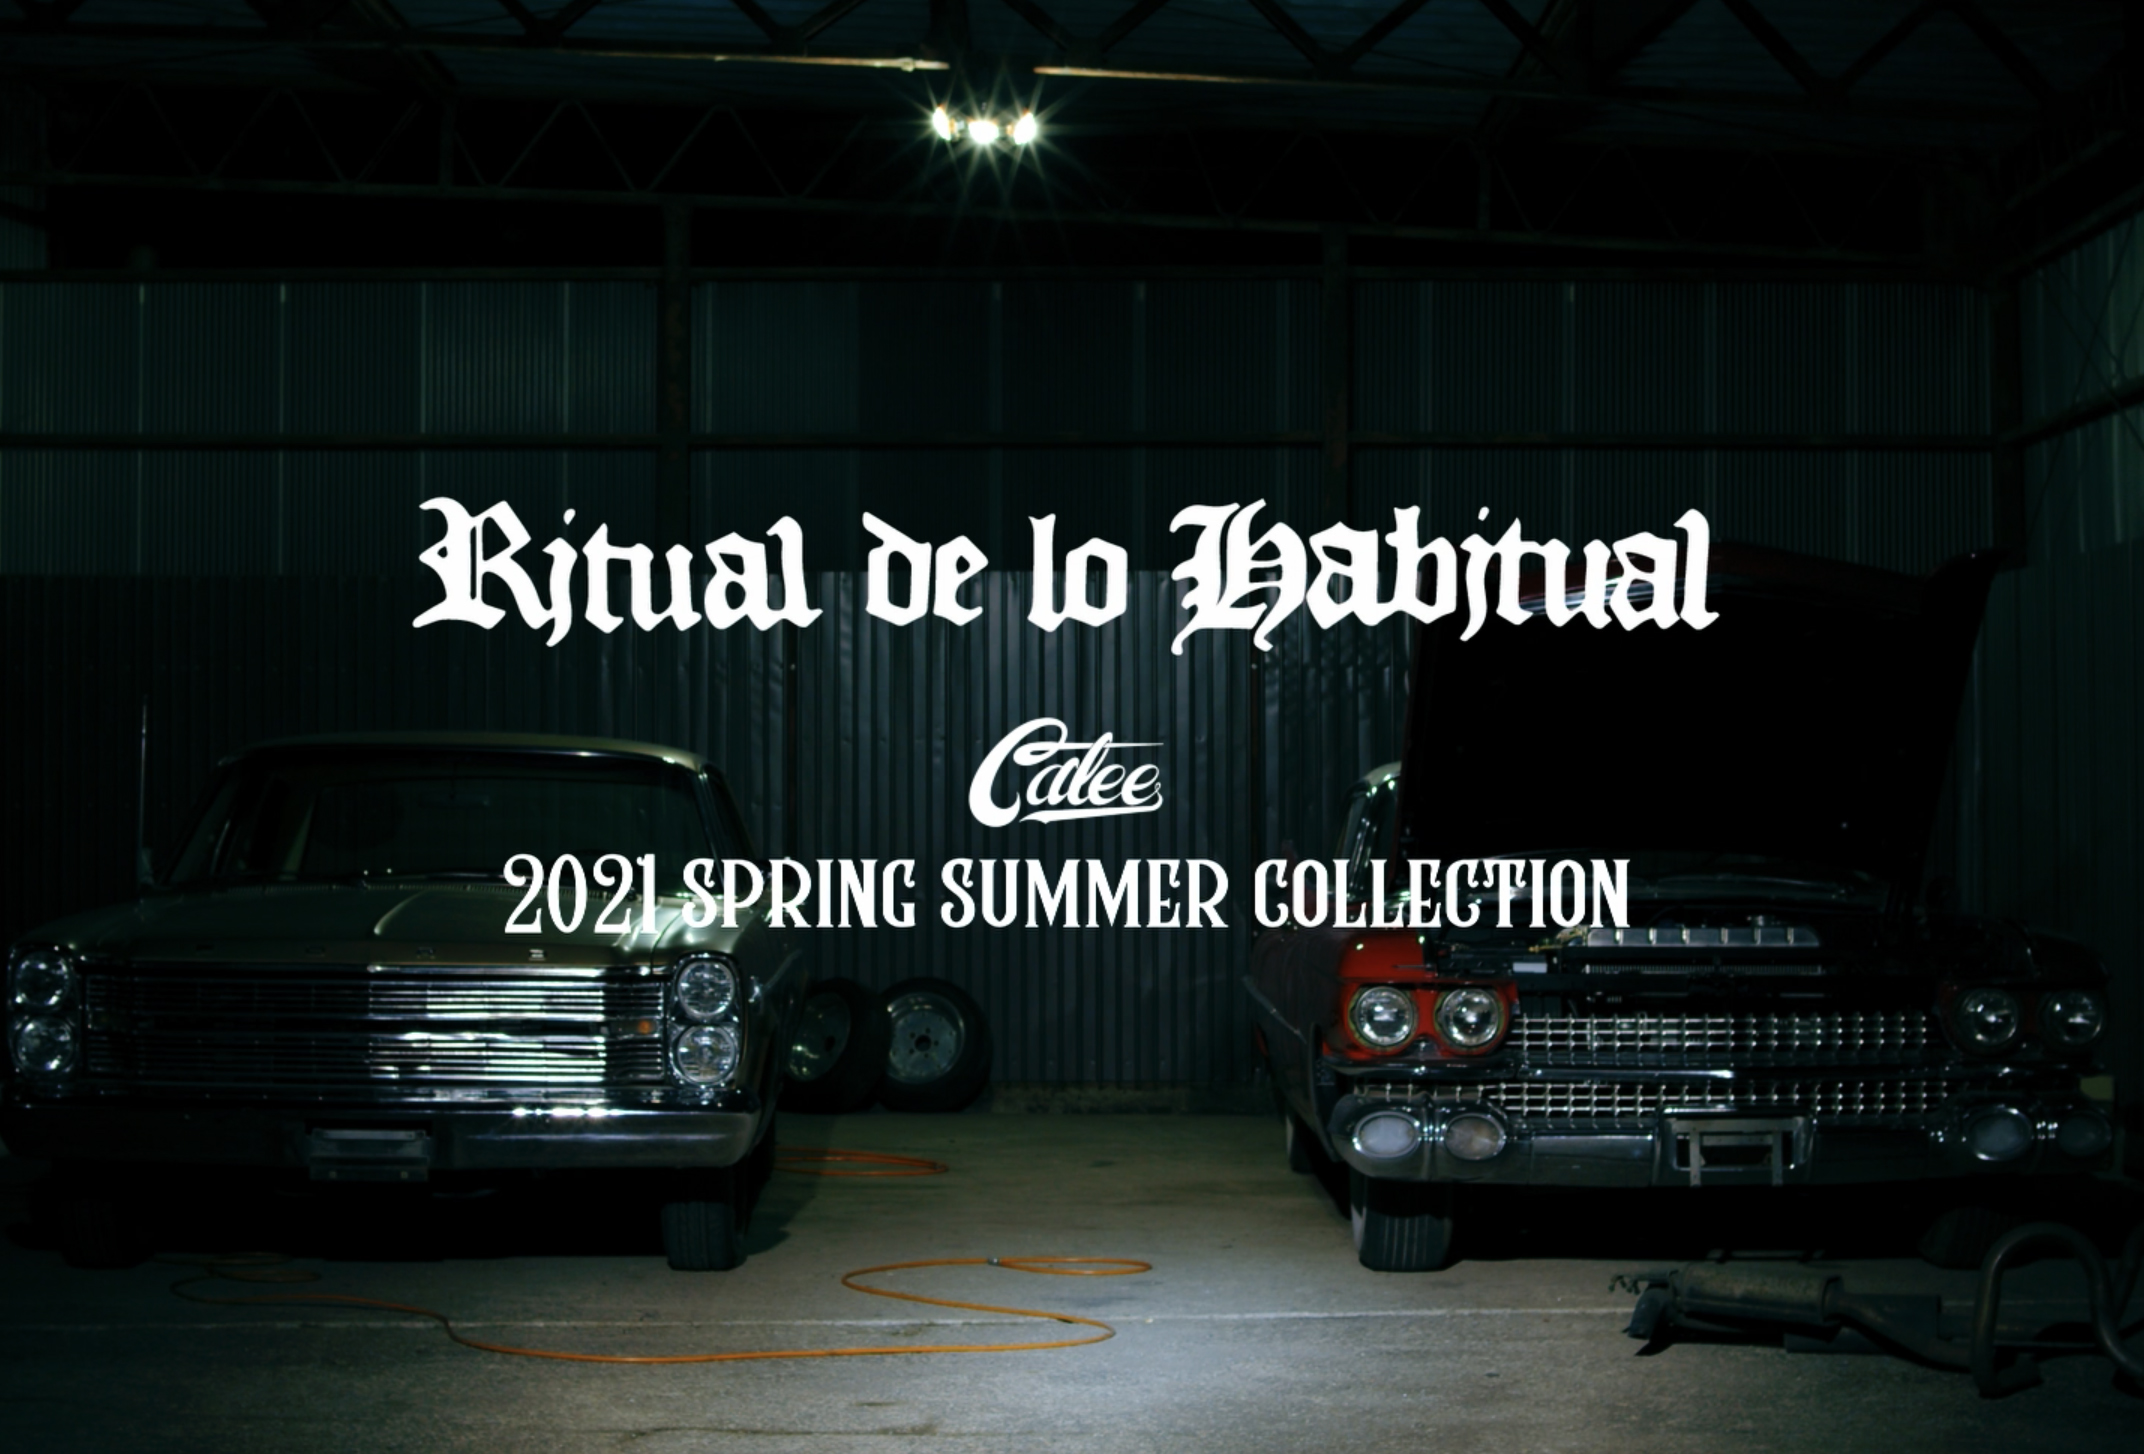 2021 SPRING SUMMER COLLECTION LOOK MOVIE